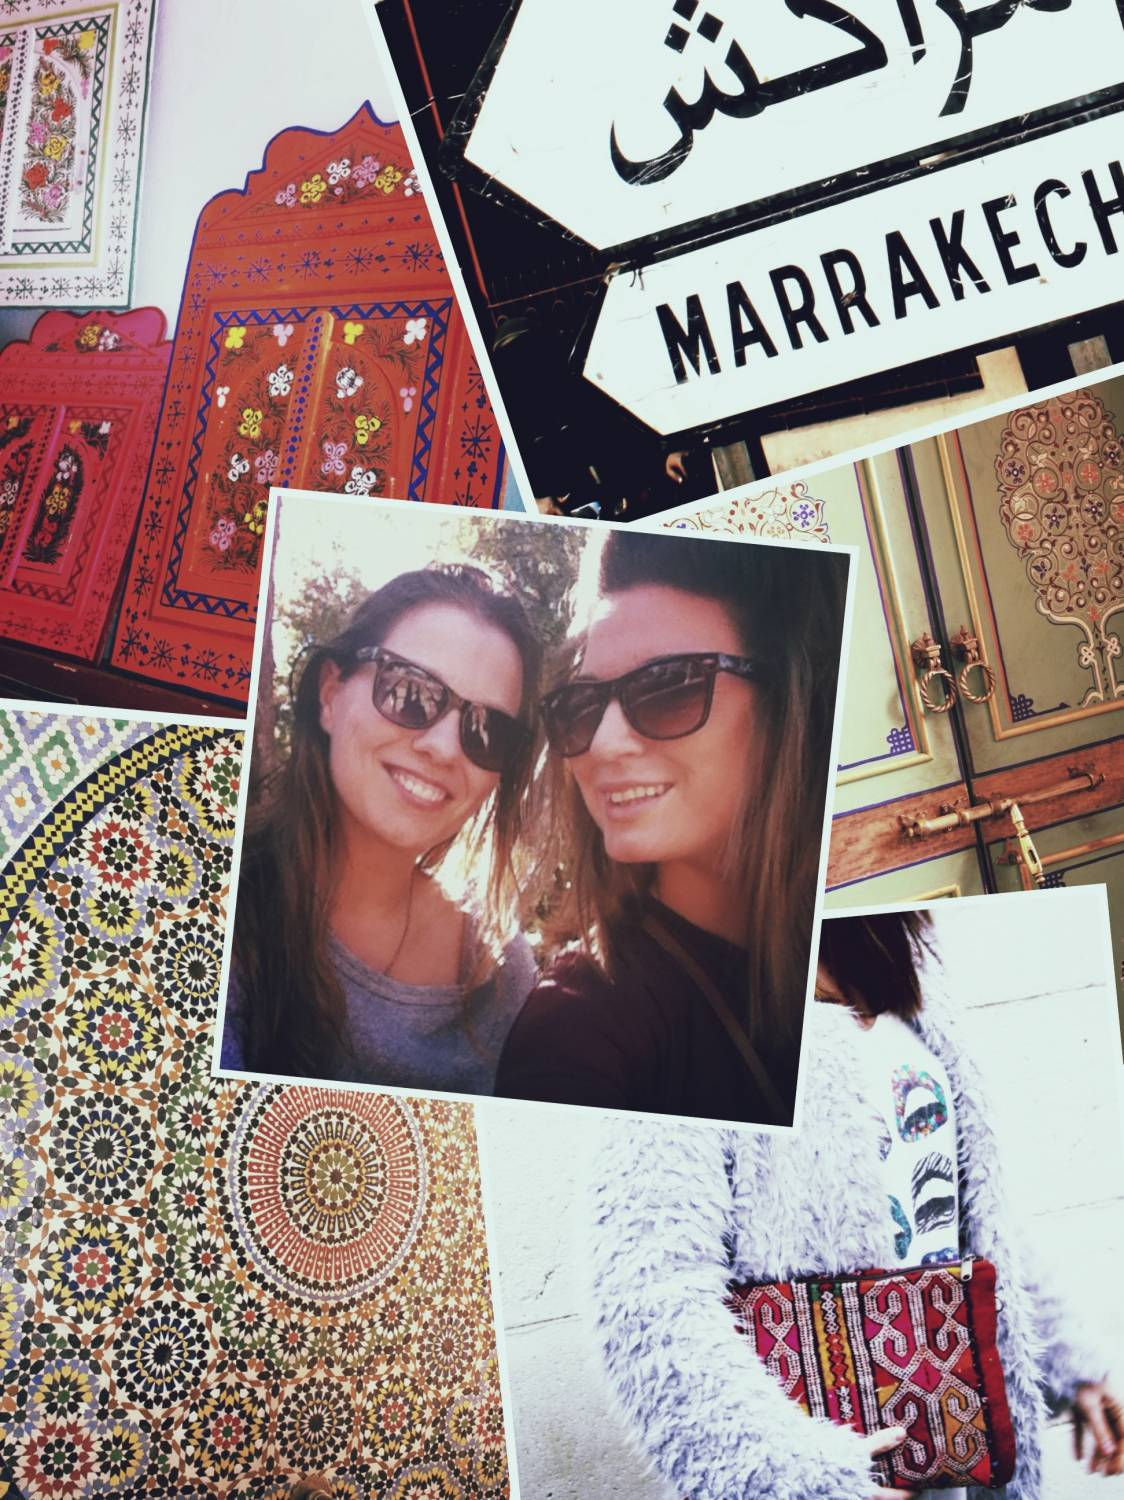 Marrakech Musthaves online!